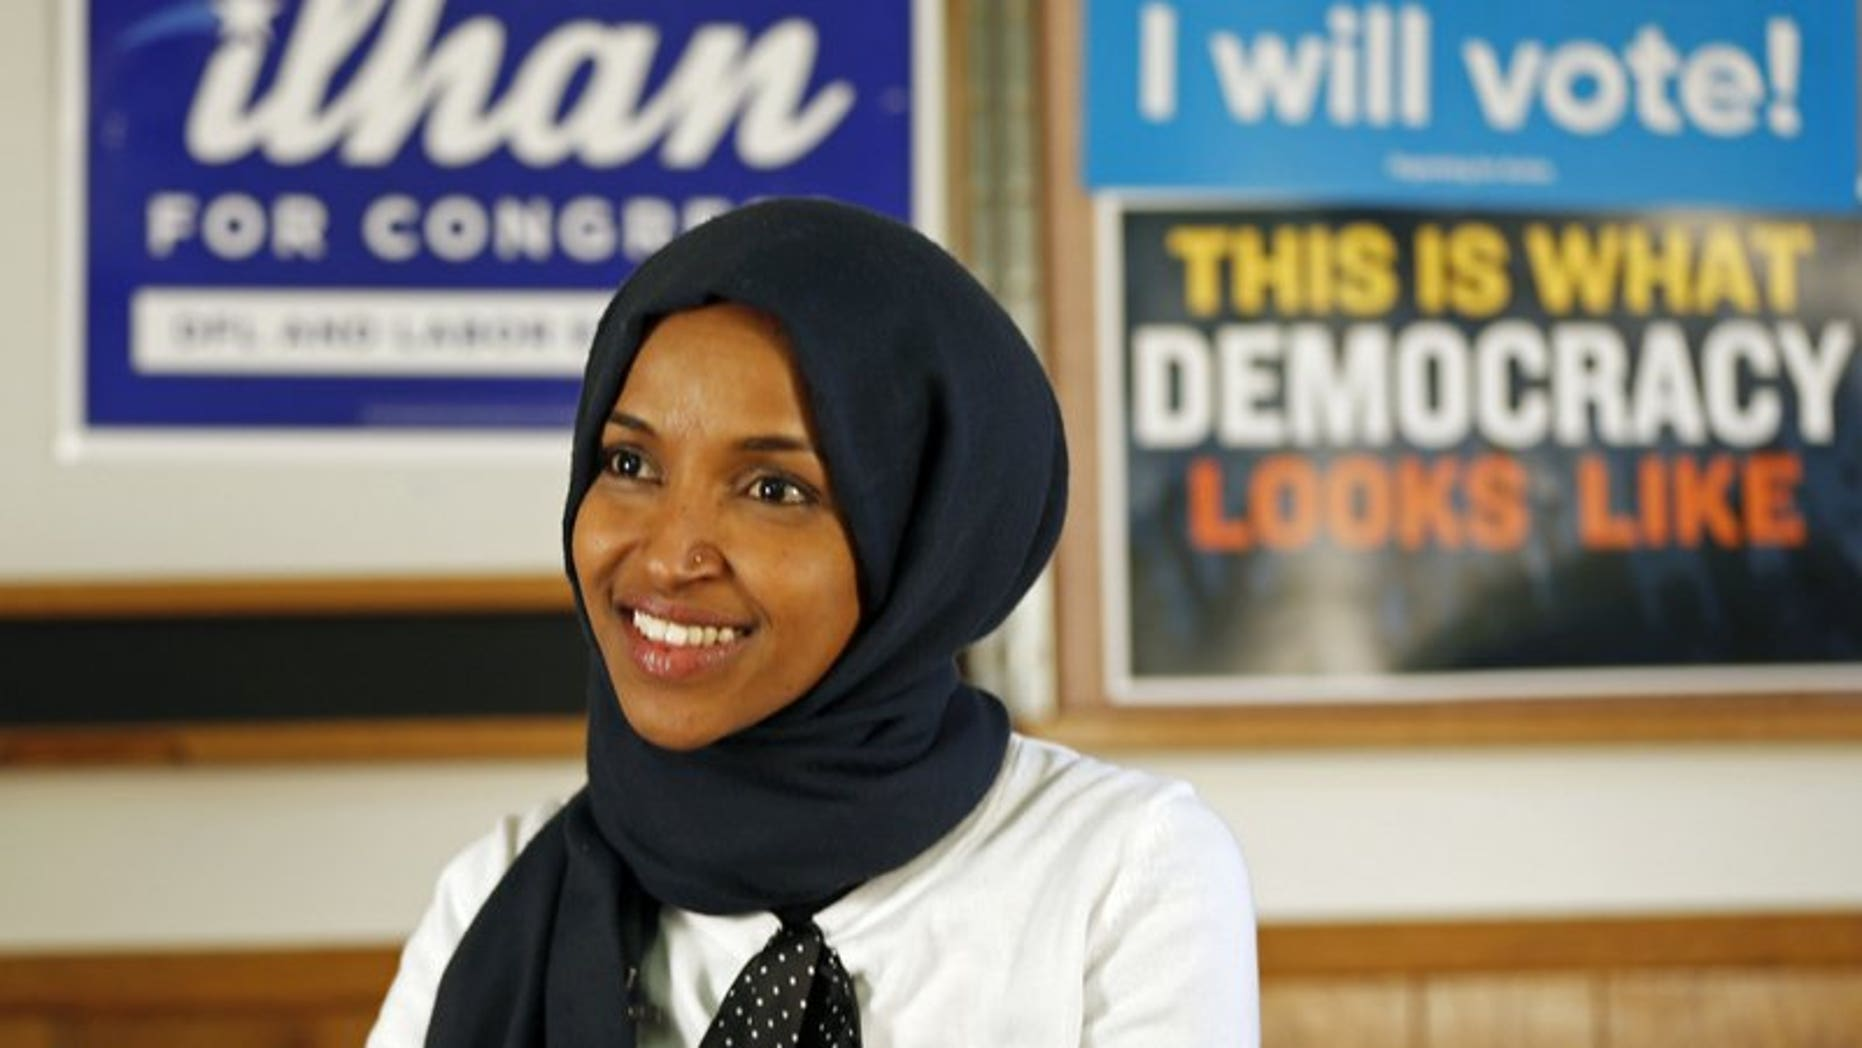 Hard-left Democratic Rep. Ilhan Omar is facing backlash and accusations of homophobia after claiming that Sen. Lindsey Graham is being blackmailed into supporting President Trump. (Associated Press)